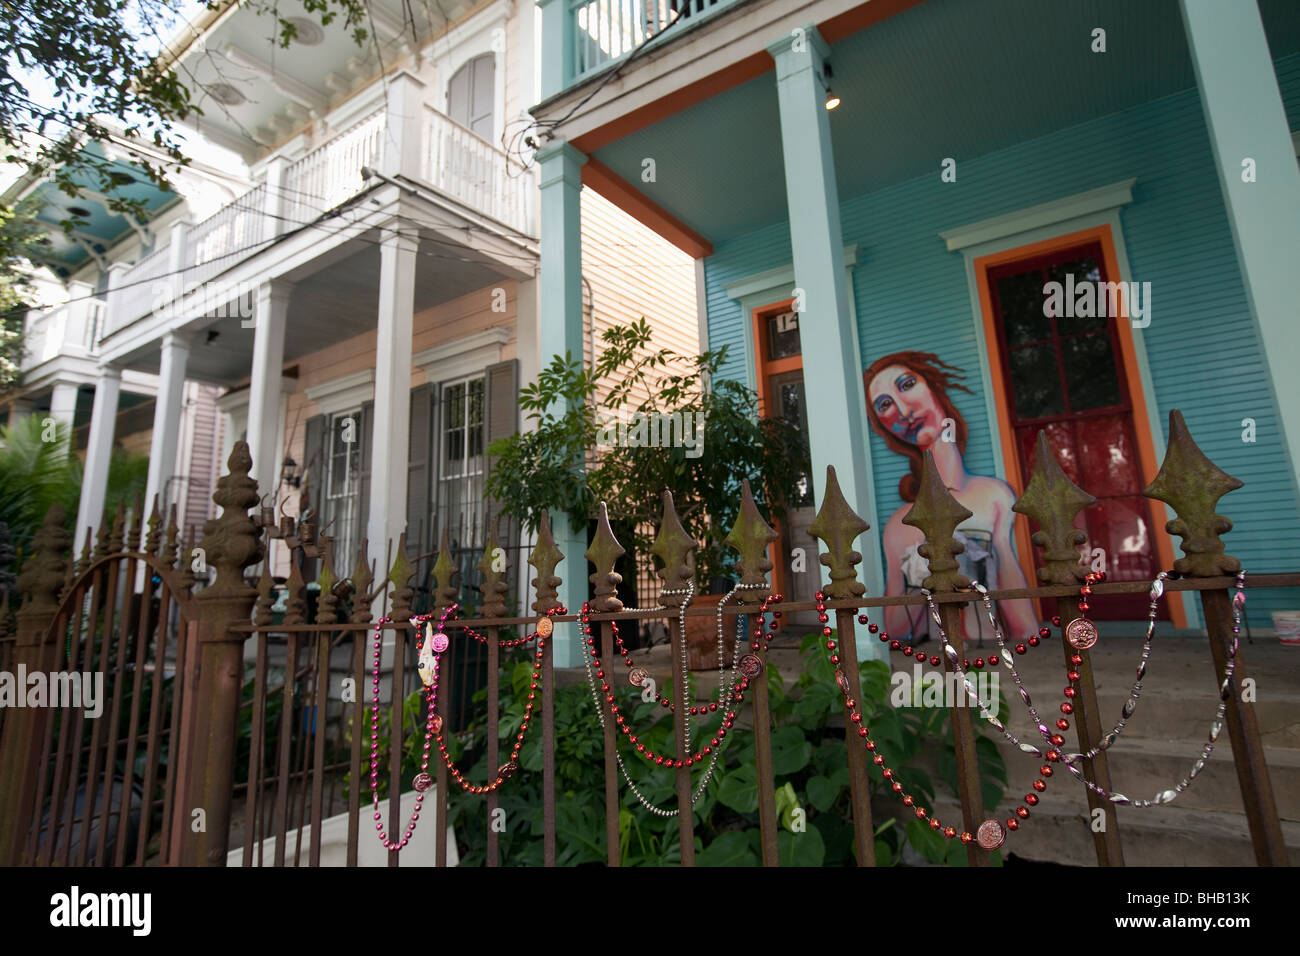 House with artwork on porch and Mardi Gras beads on iron fence on Magazine Street, New Orleans, Louisiana. - Stock Image